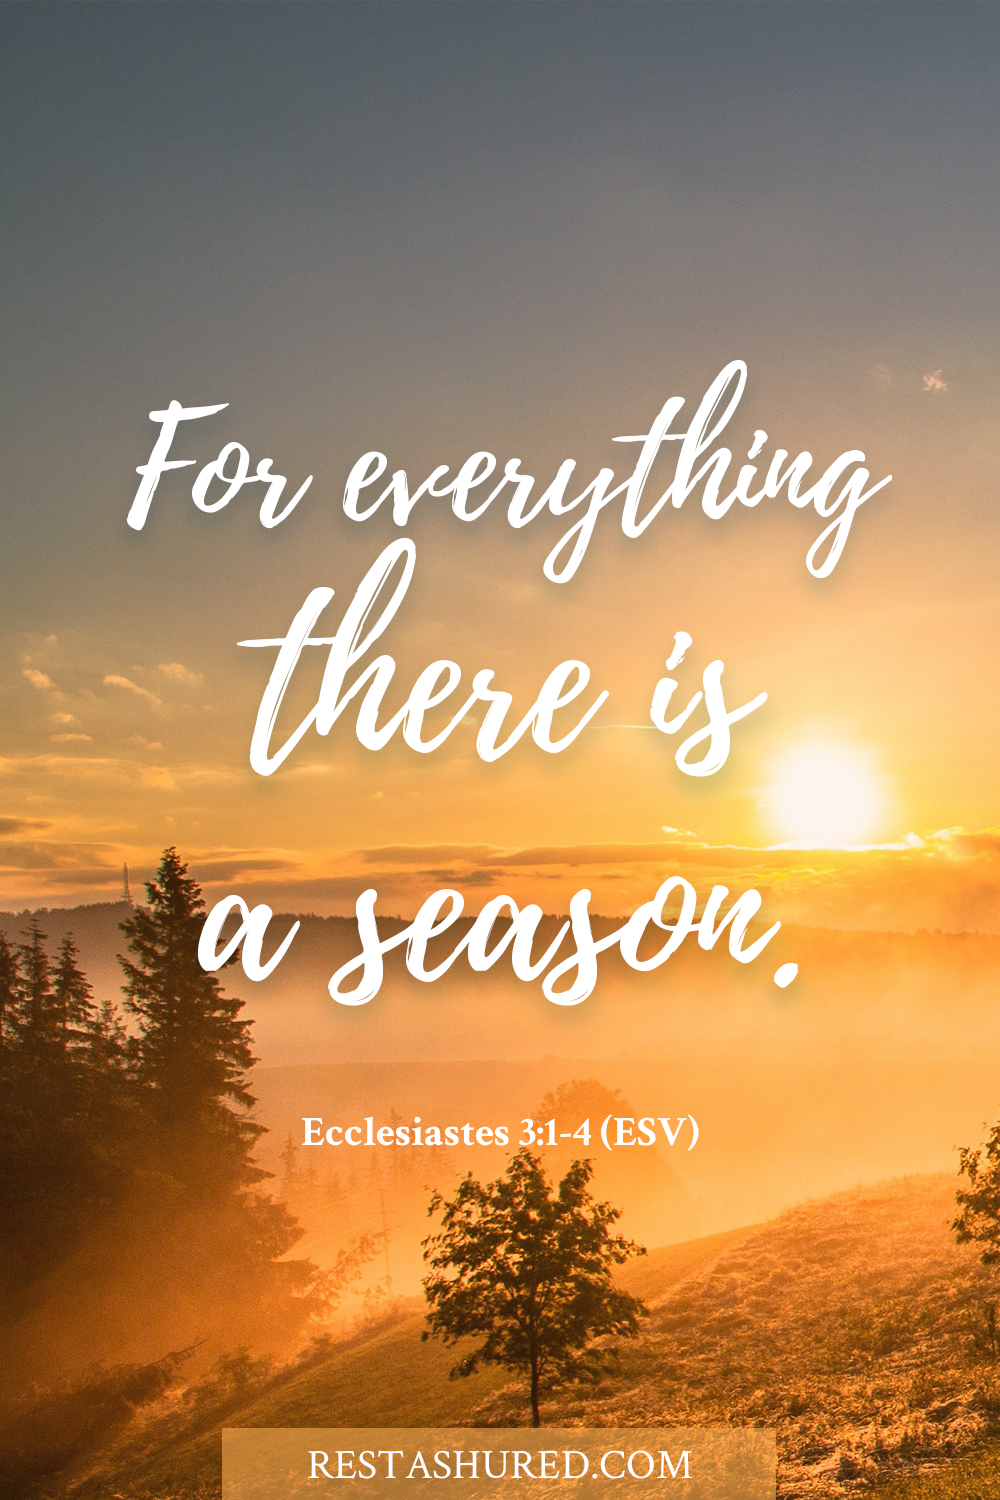 Ecclesiastes 3:1-4 - For everything there is a season